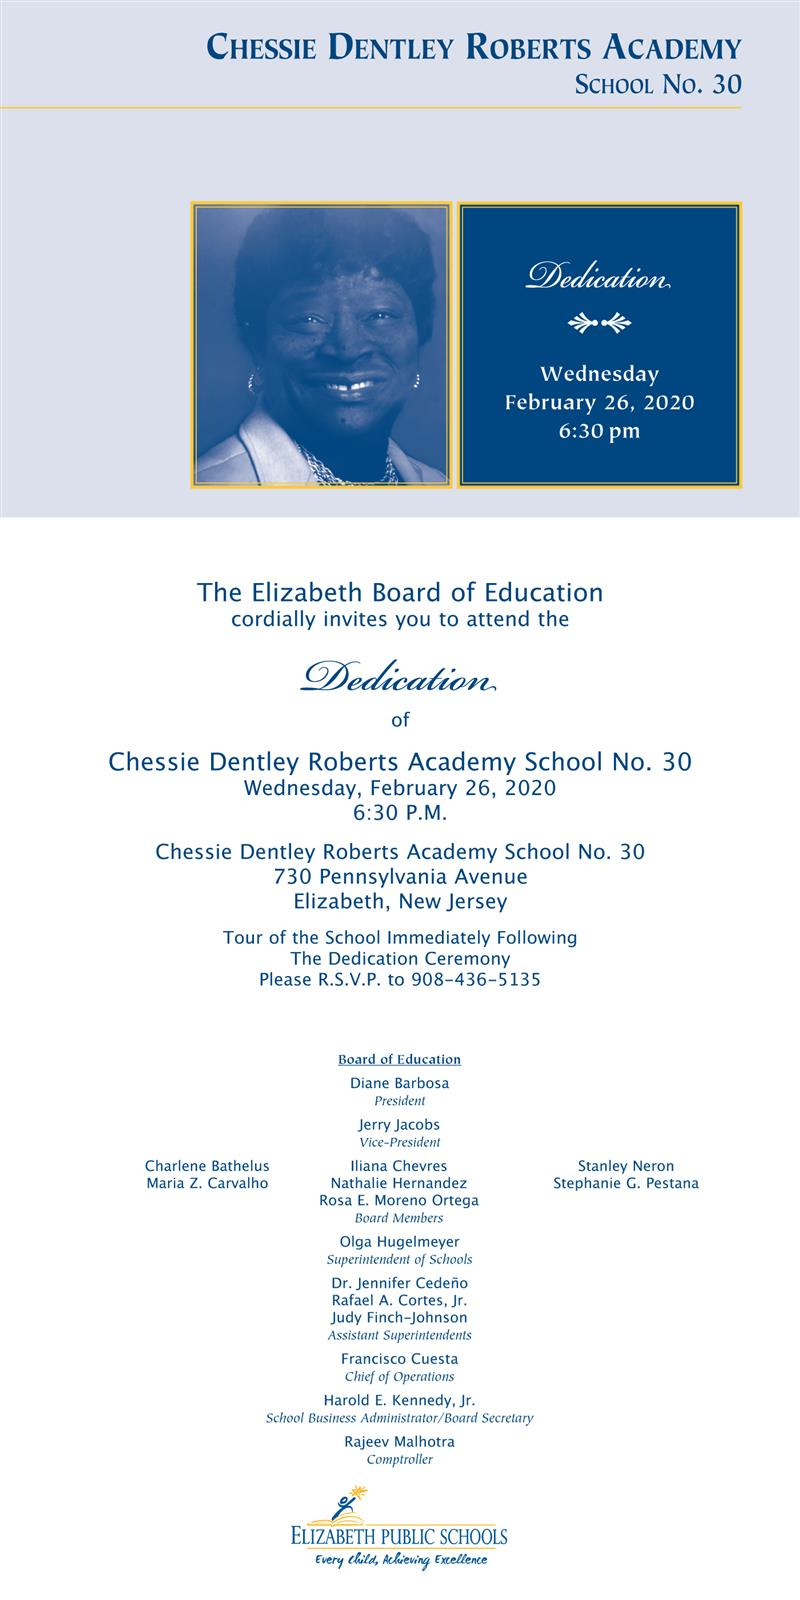 Dedication of Chessie Dentley Roberts Academy School No. 30